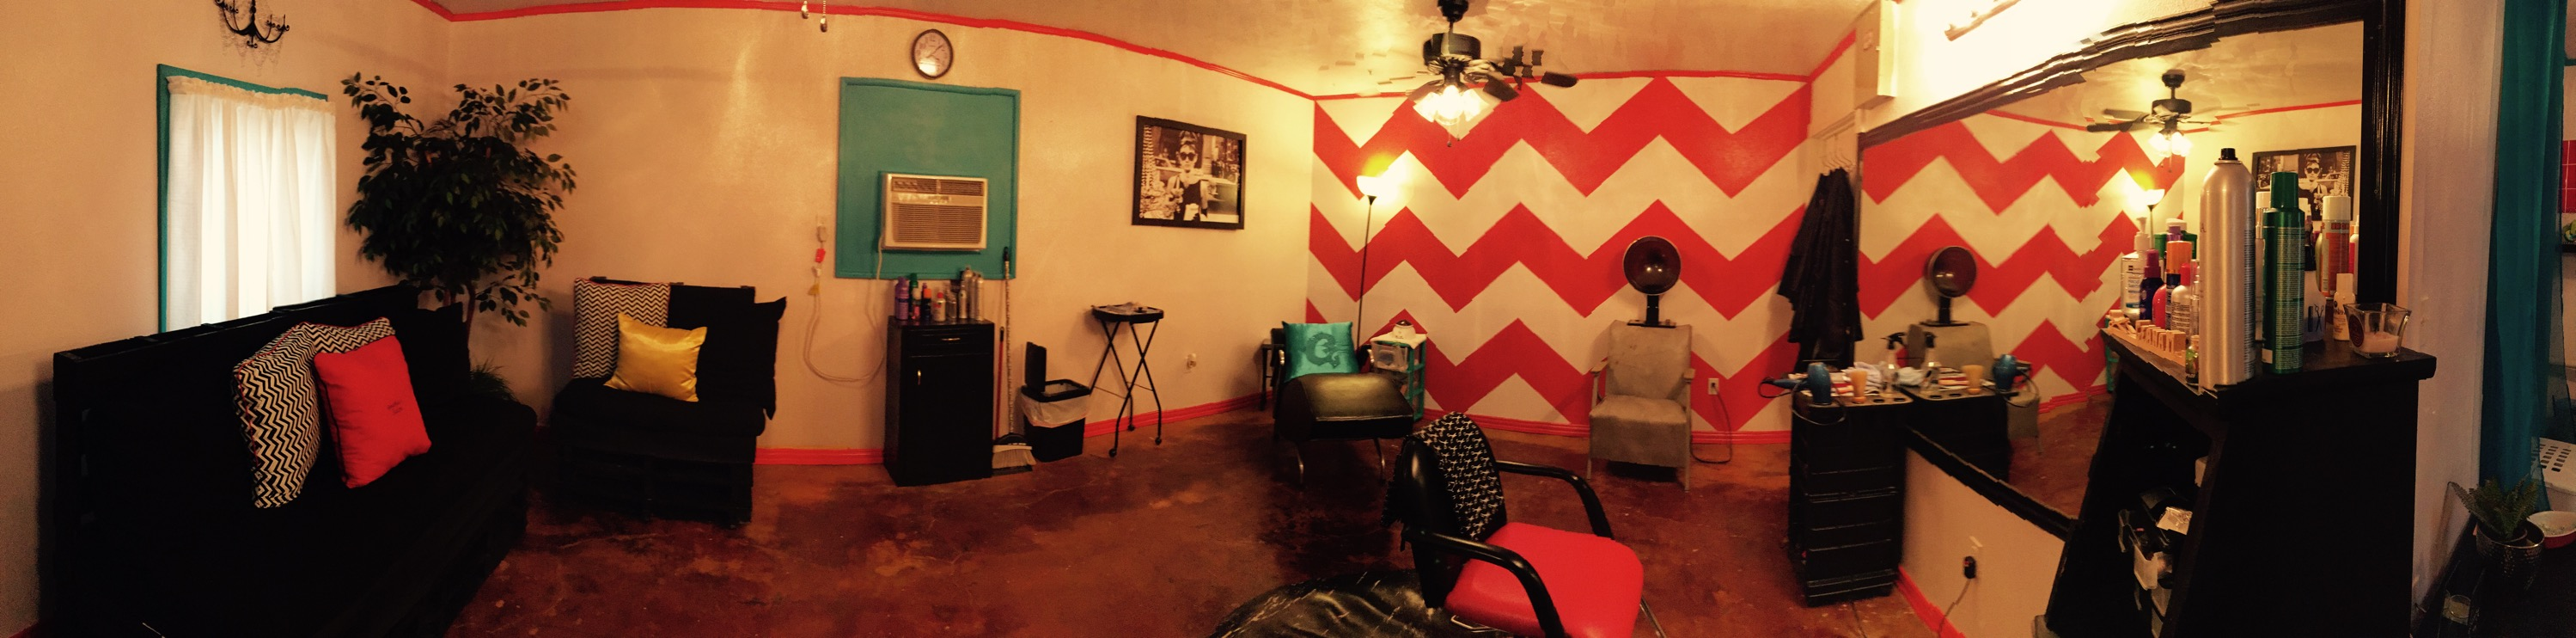 Geana Mac's Salon pano